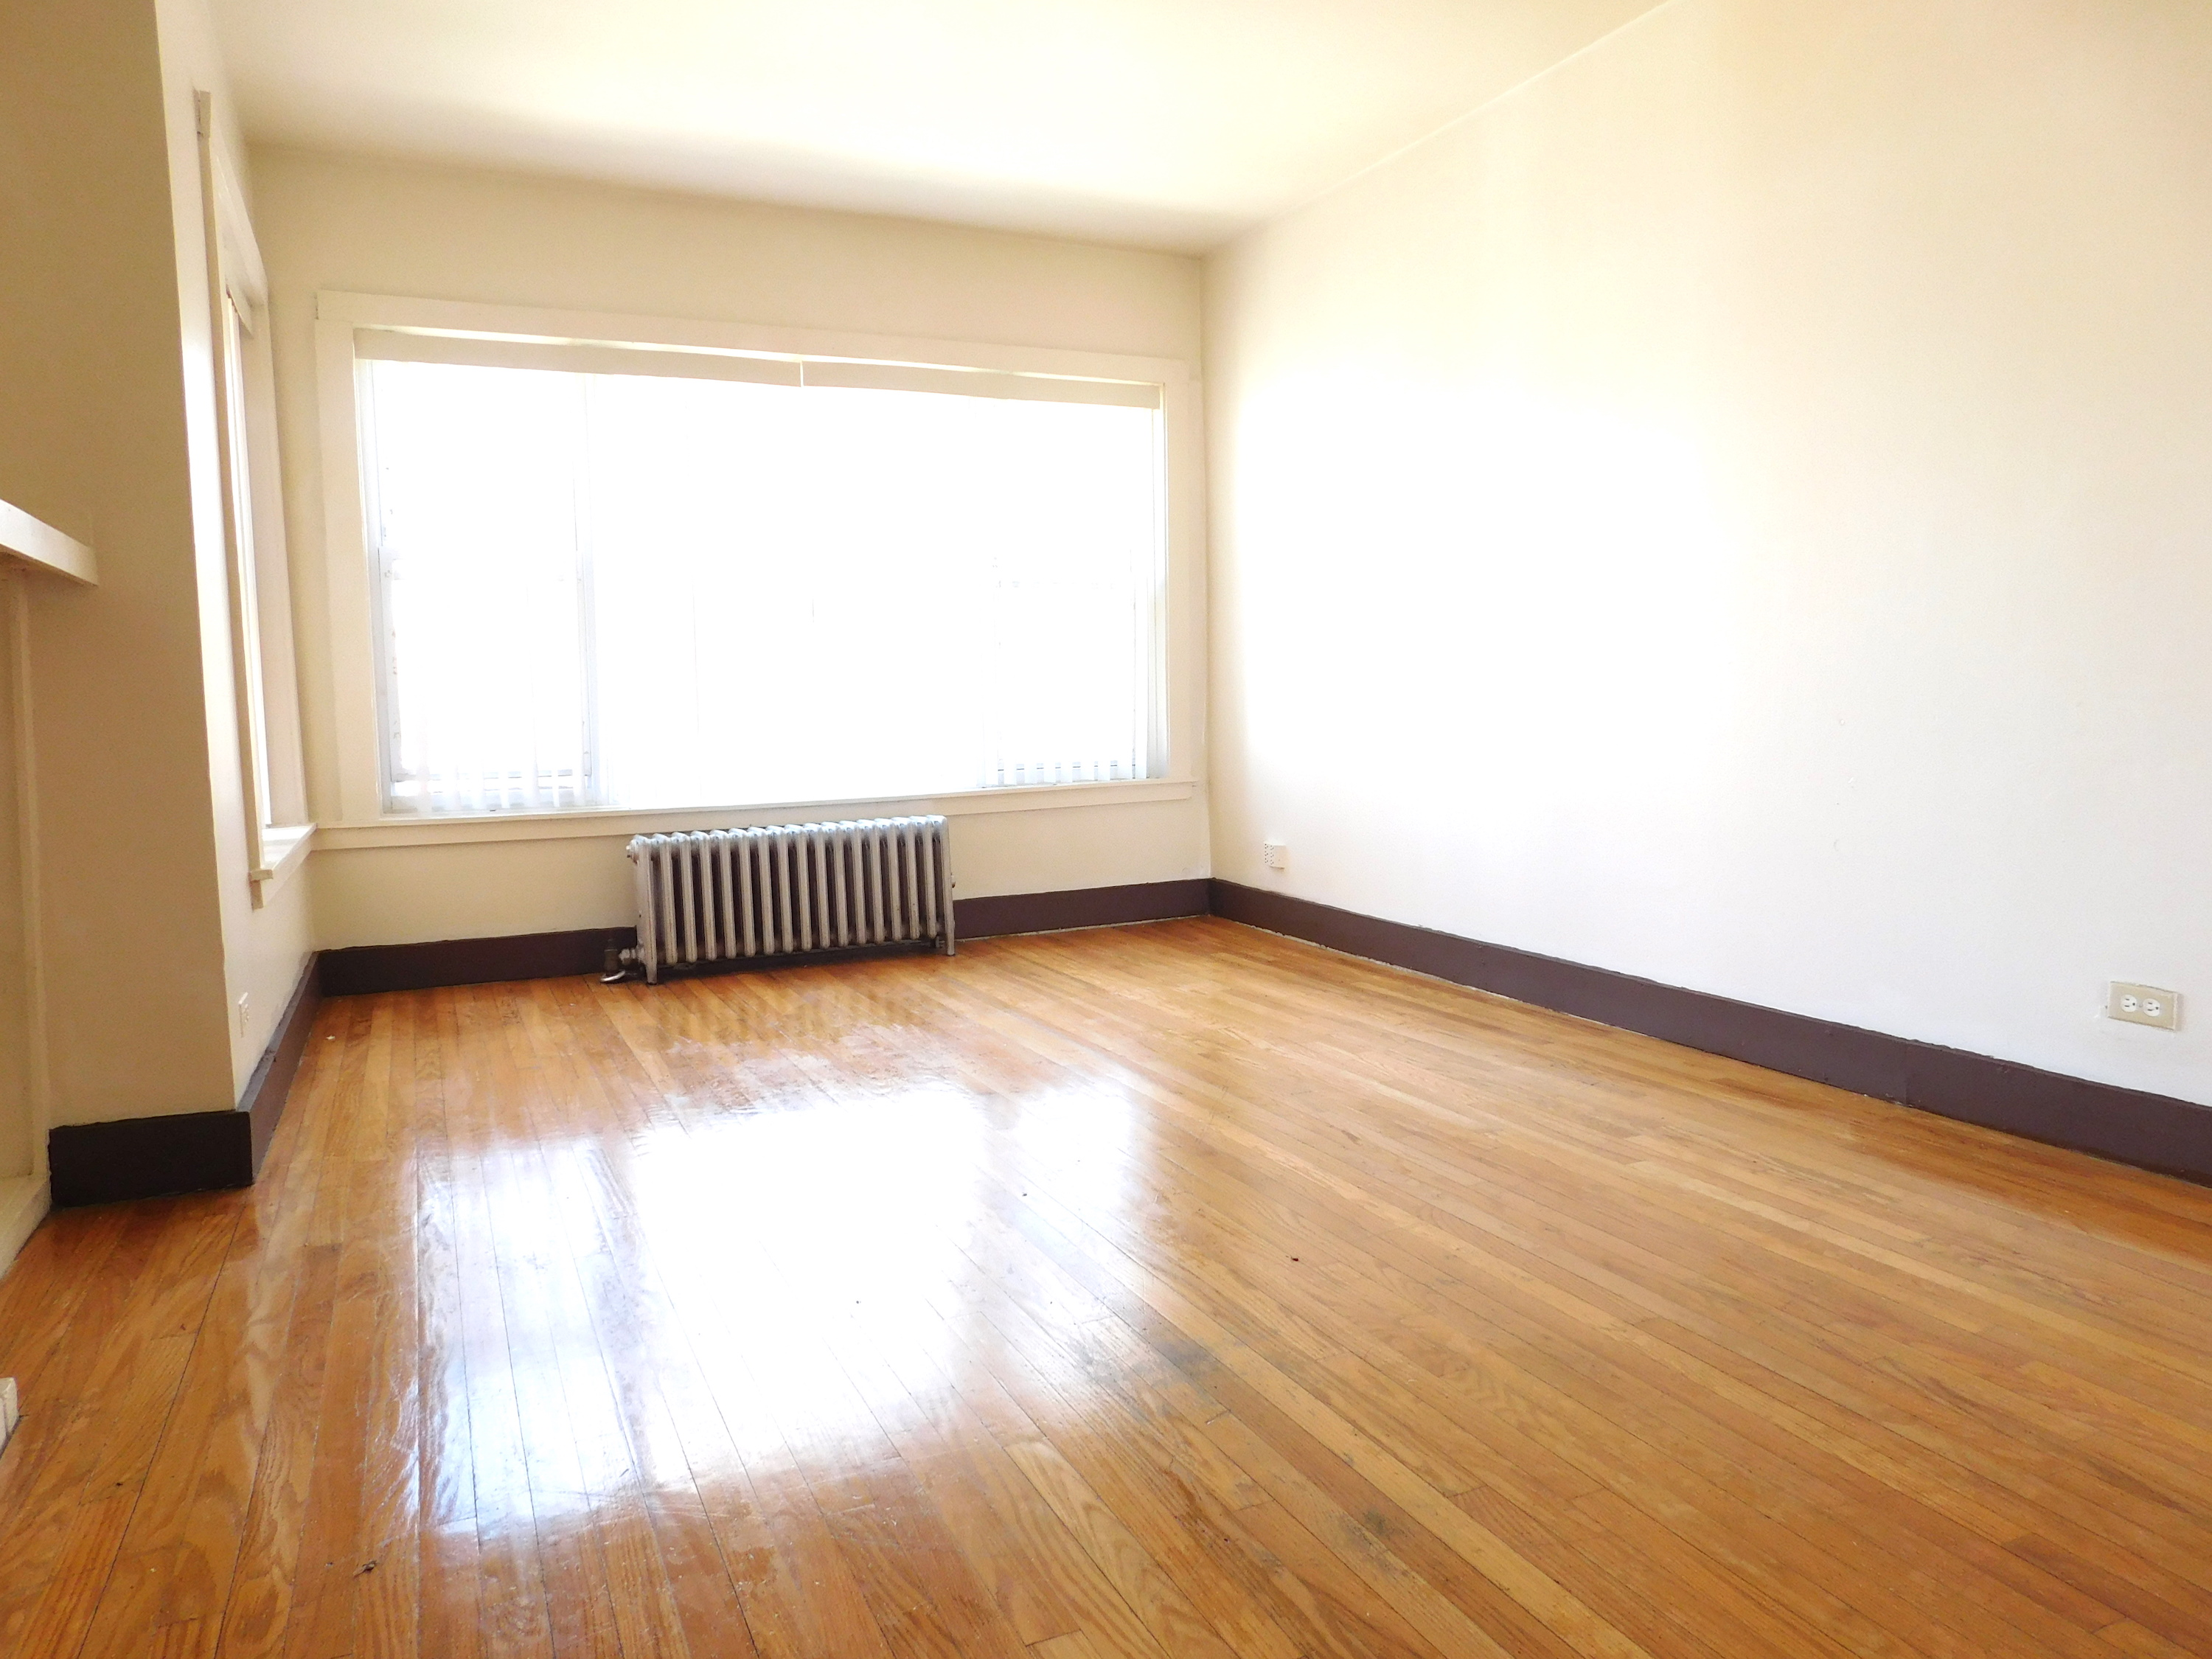 2 bedroom in Austin Chicago utilities included - living room